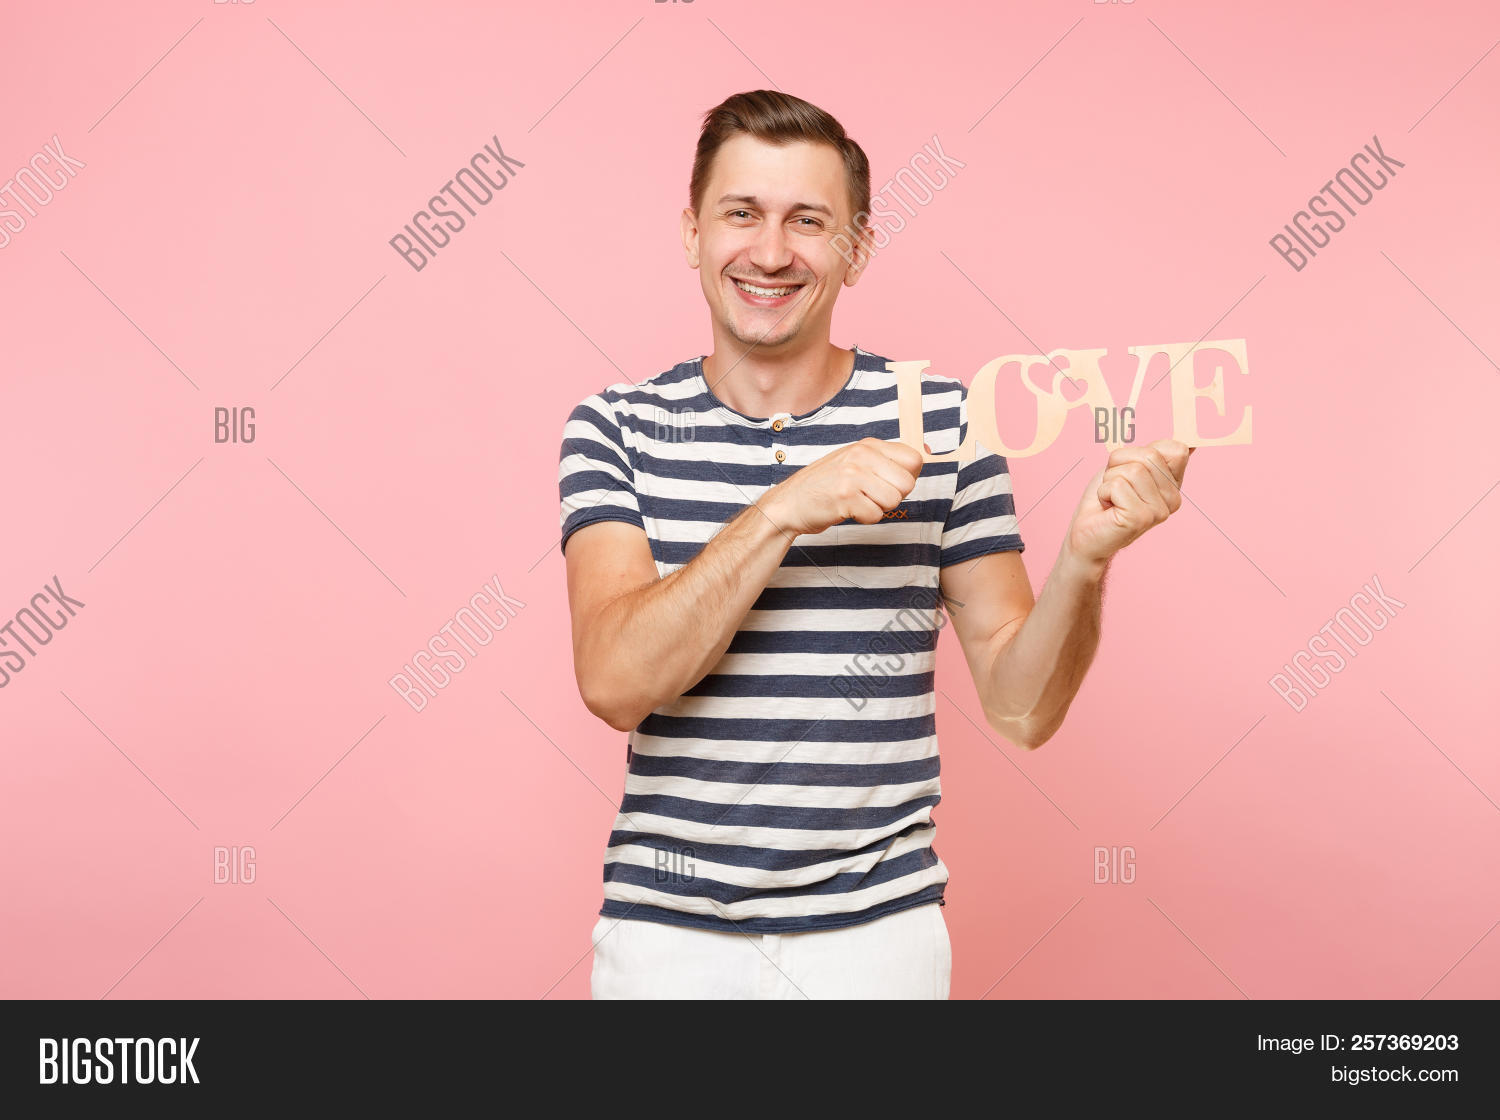 823bfca0 Portrait of smiling young man in striped t-shirt hold wooden word Love like  gun shoot isolated on trending pastel pink background.